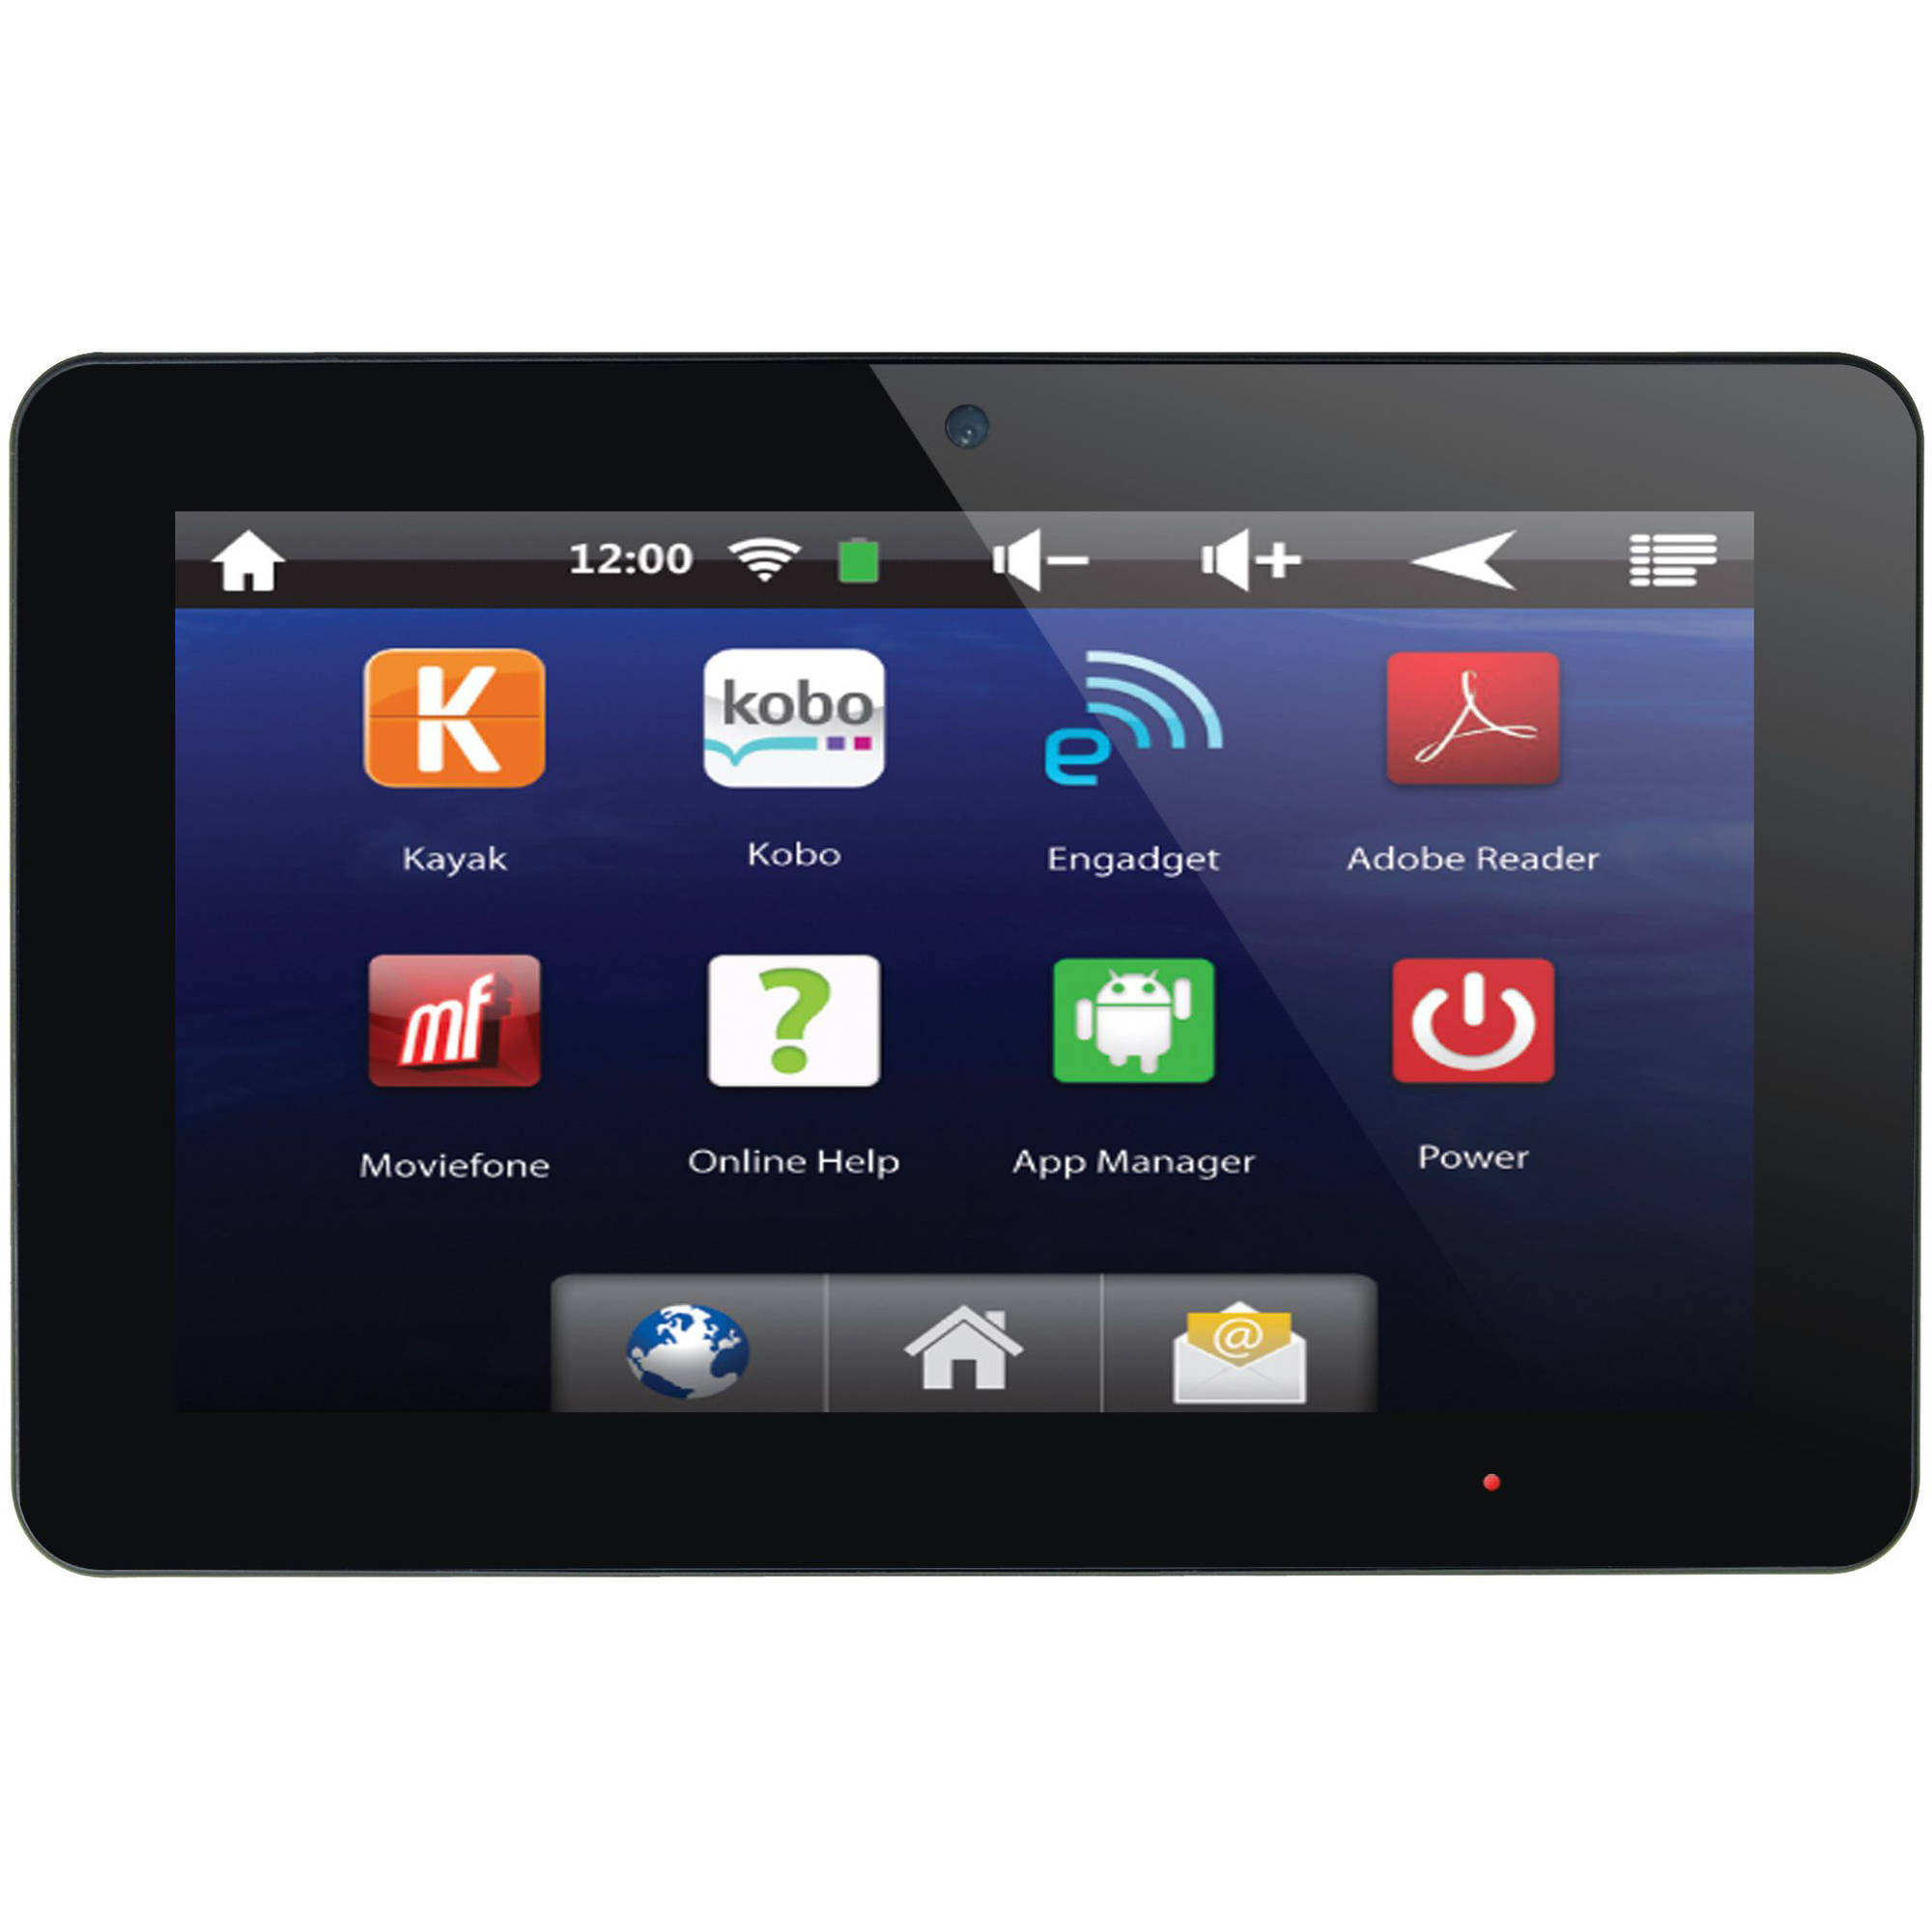 """SuperSonic Matrix MID with WiFi 10.1"""" Touchscreen Tablet PC Featuring Android 4.2 (Jelly Bean) Operating System"""